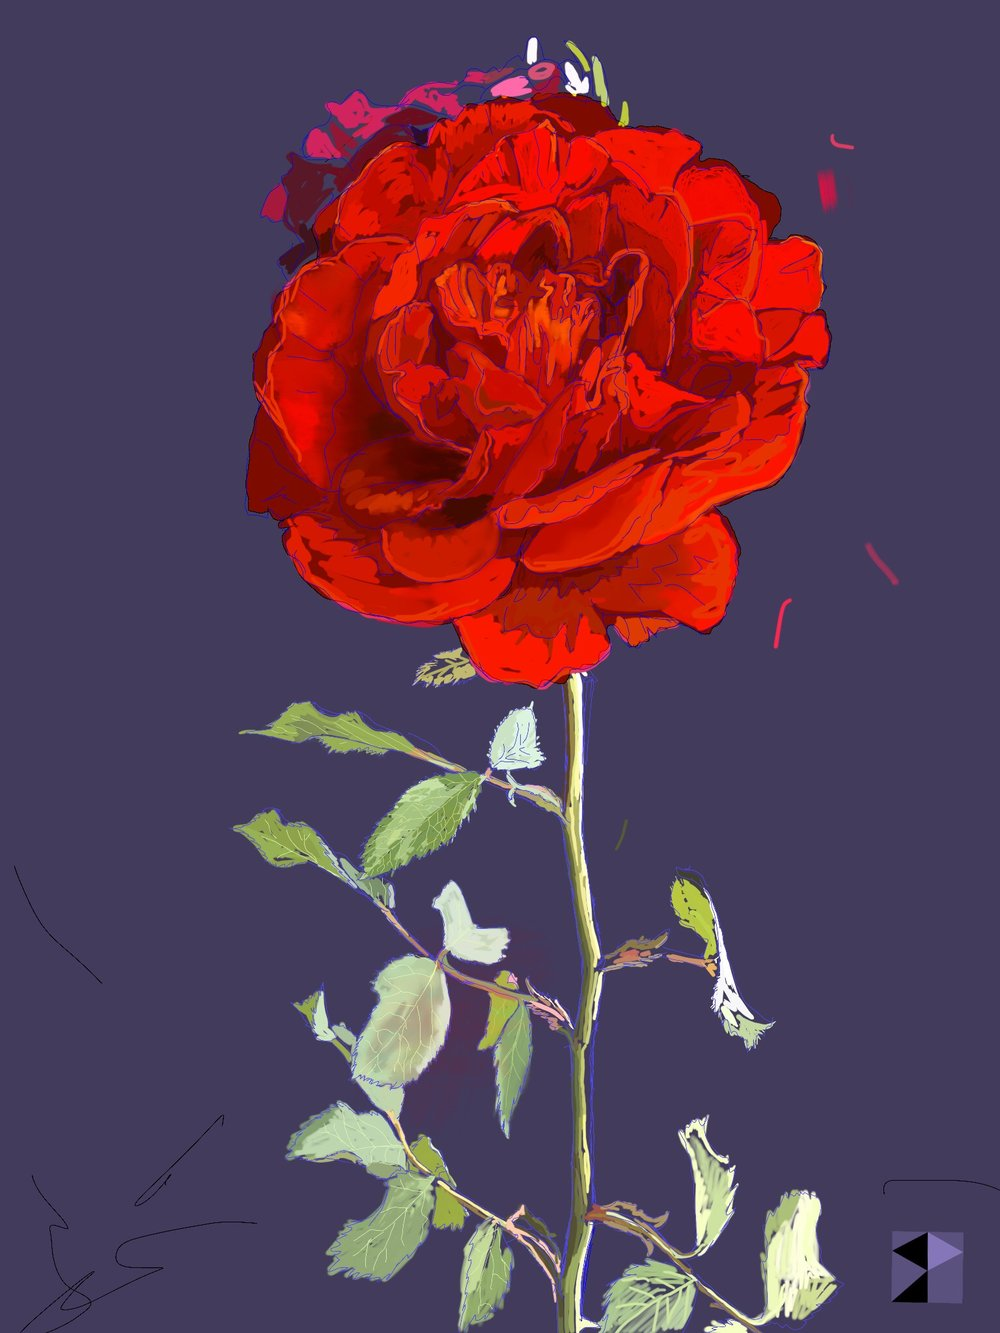 "Red Red Rose   Electronics Painting, iPad, Procreate, Pencil 53,  Photoshop. © 2016 dimensions variable to 48"" x 60""  giclee limited edition prints available contact the artist"